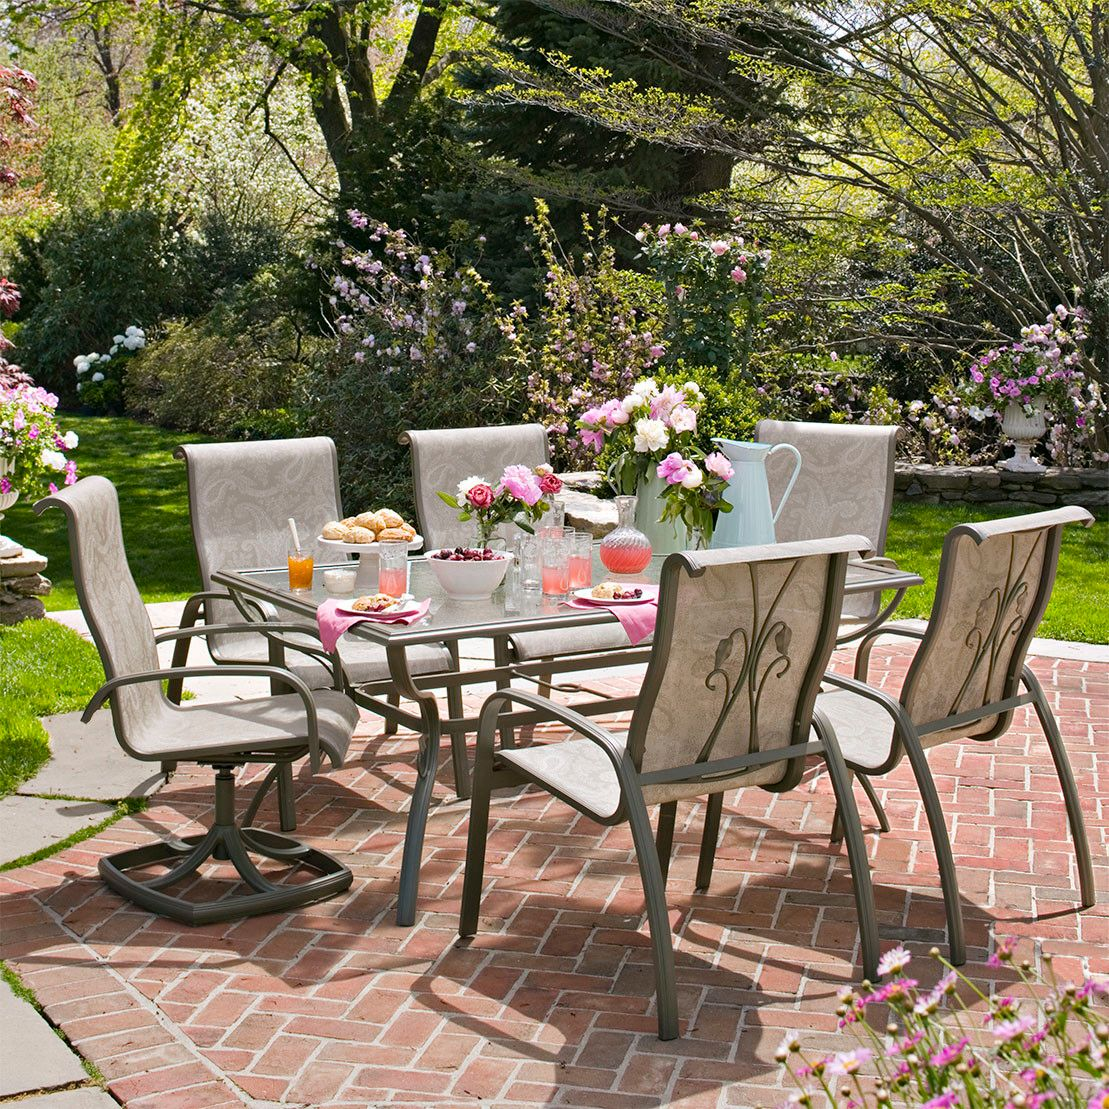 martha stewart patio chairs wingback chair leather everyday garden bloomington dining